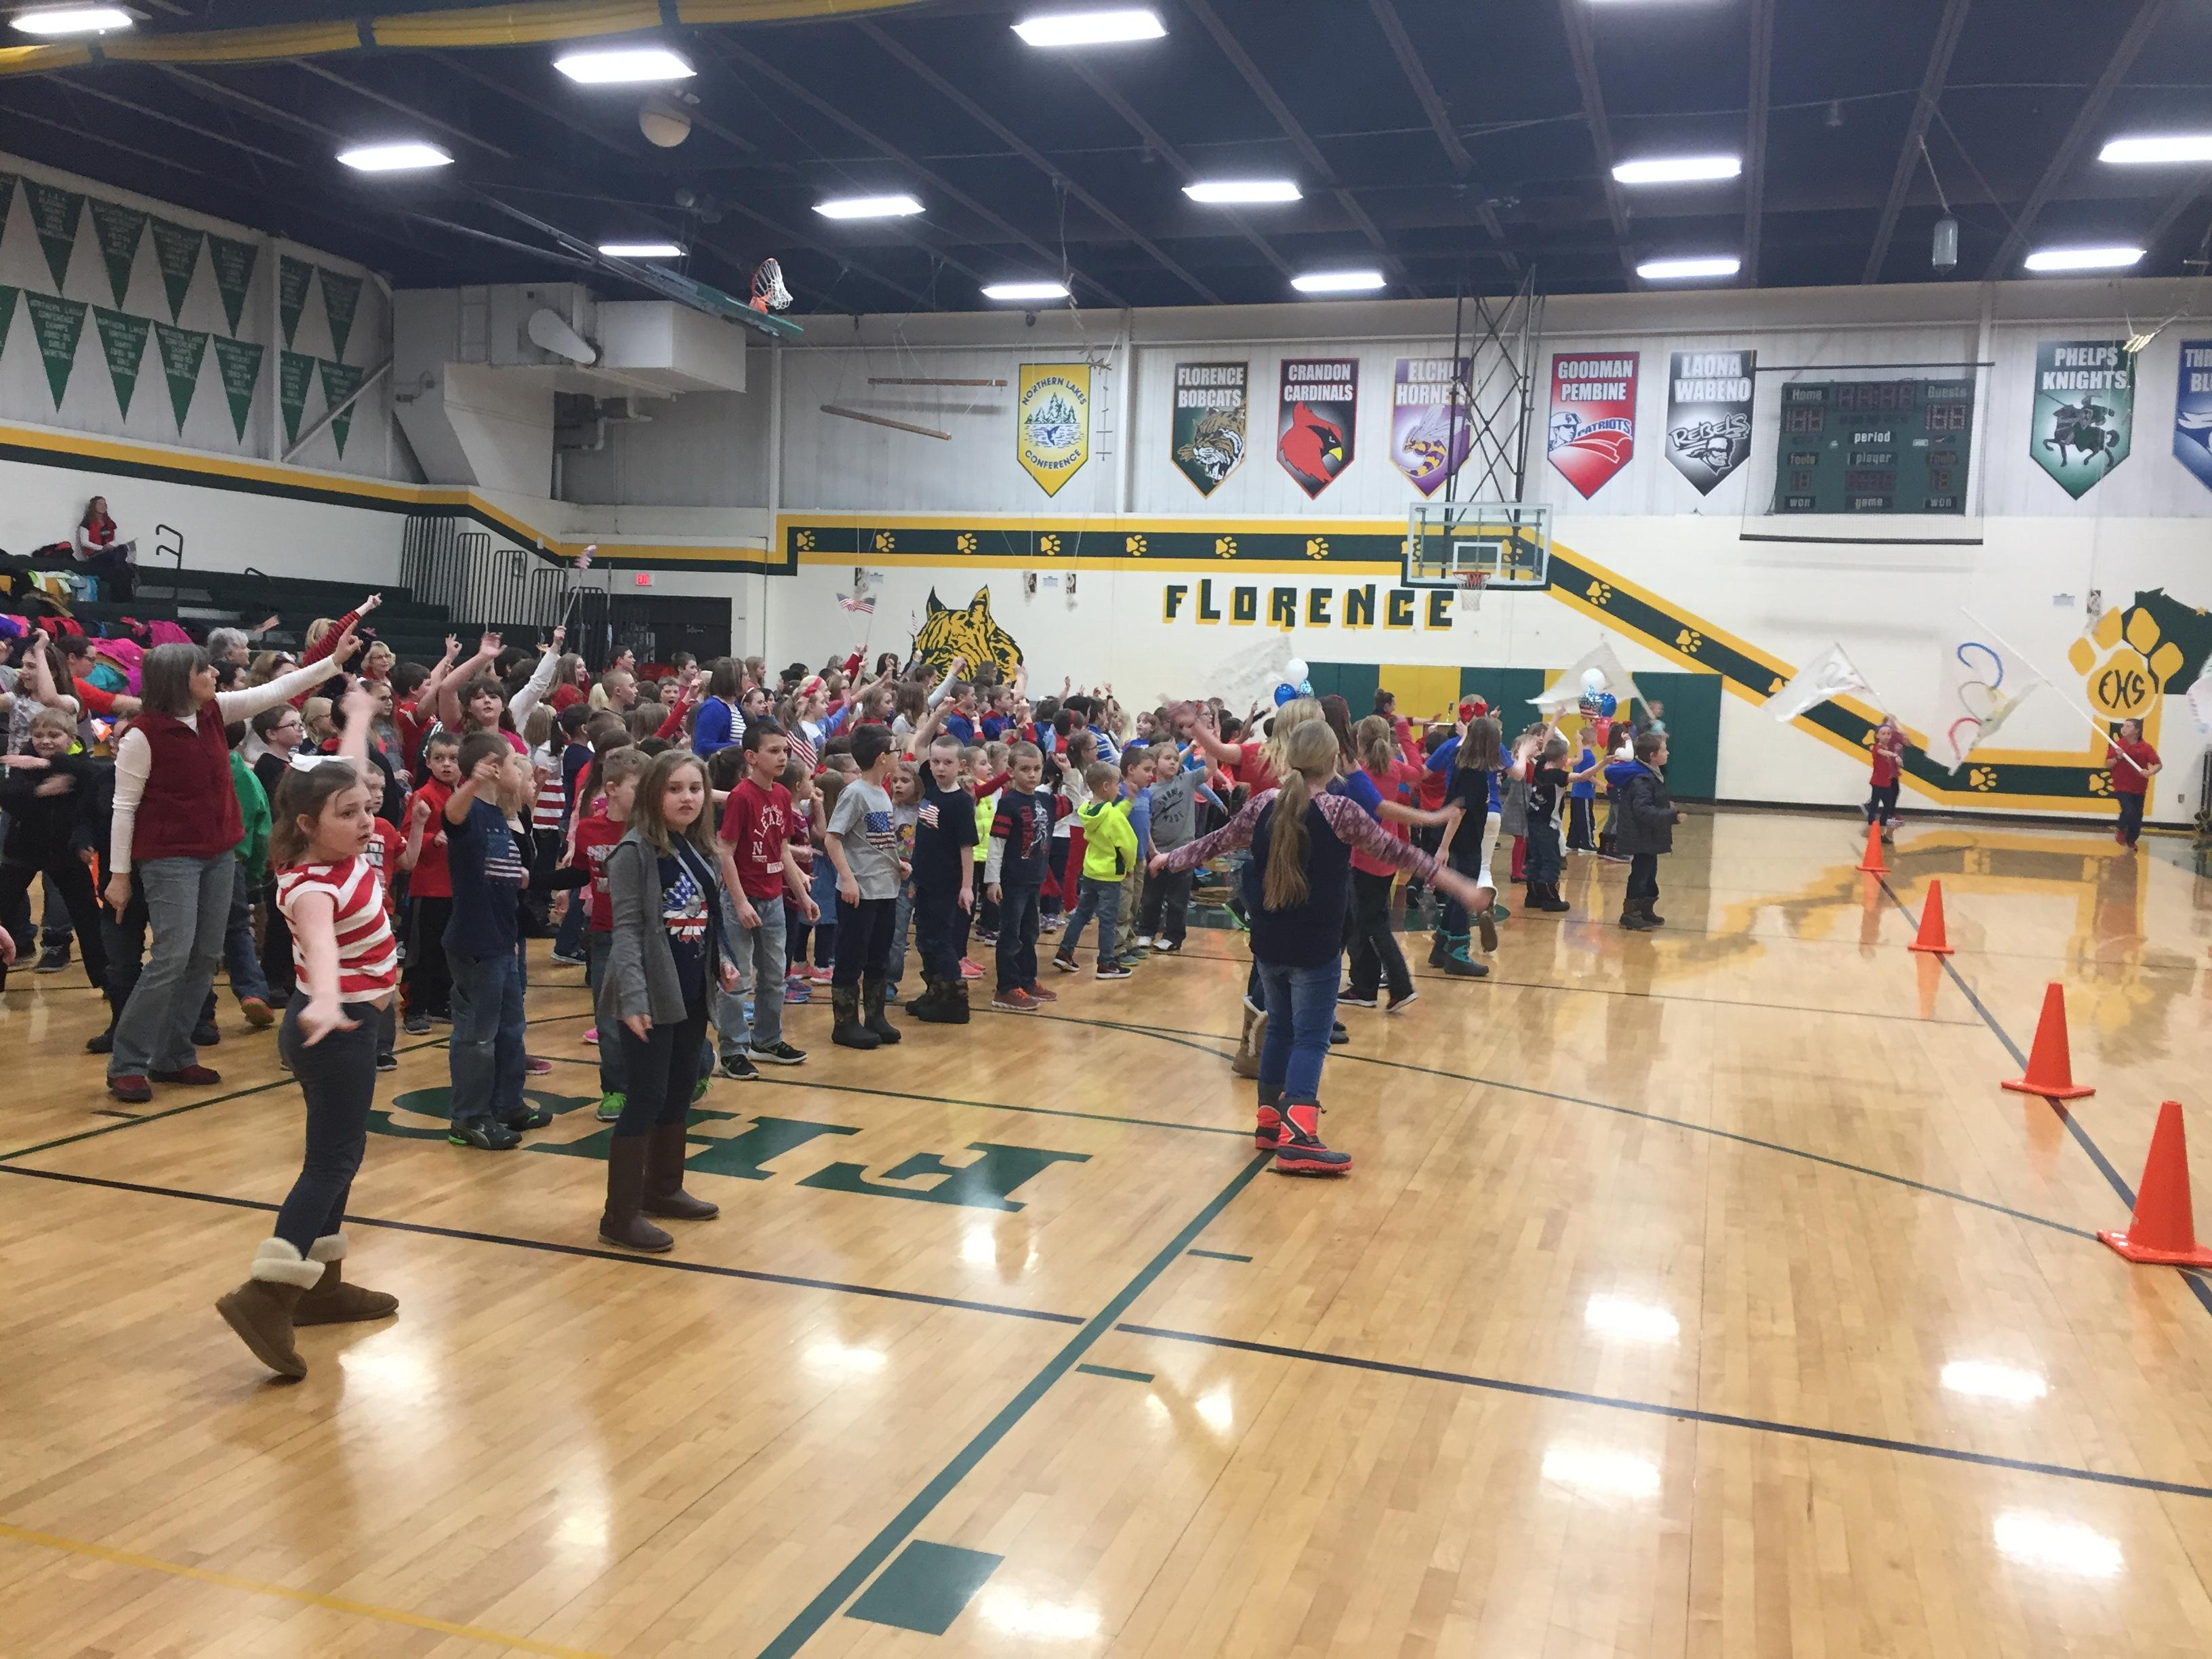 Florence held a pep rally at school for alum, Nita Englund, who will be making her first trip to the Olympics in South Korea as a ski jumper, February  7, 2018. (WLUK)